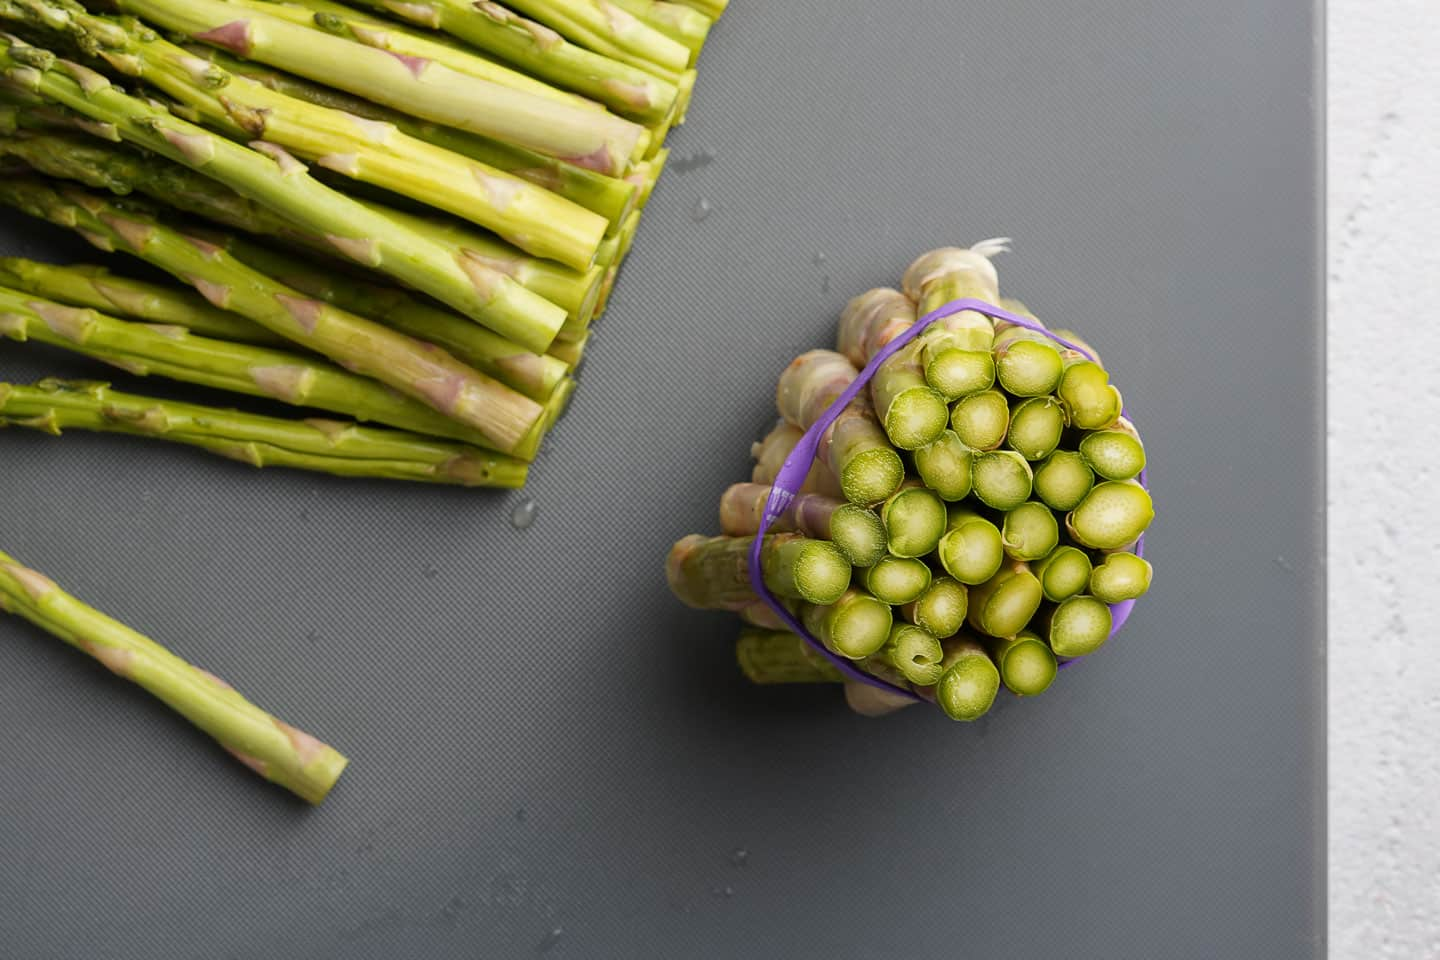 Bundled Ends of Cut off Asparagus on Cutting board